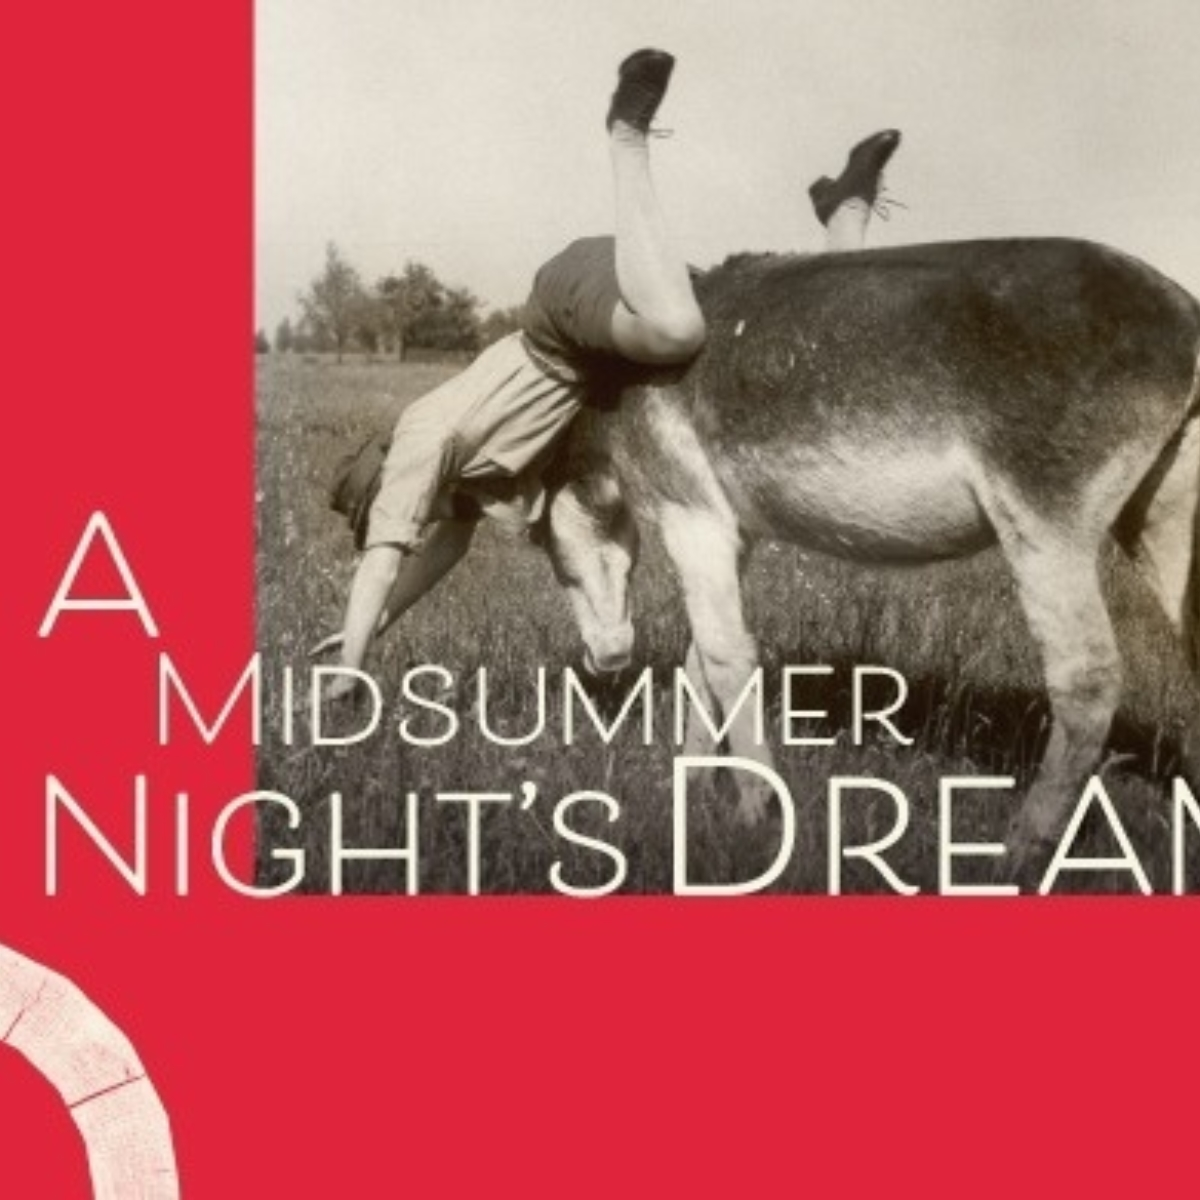 A Midsummer Night's Dream Images